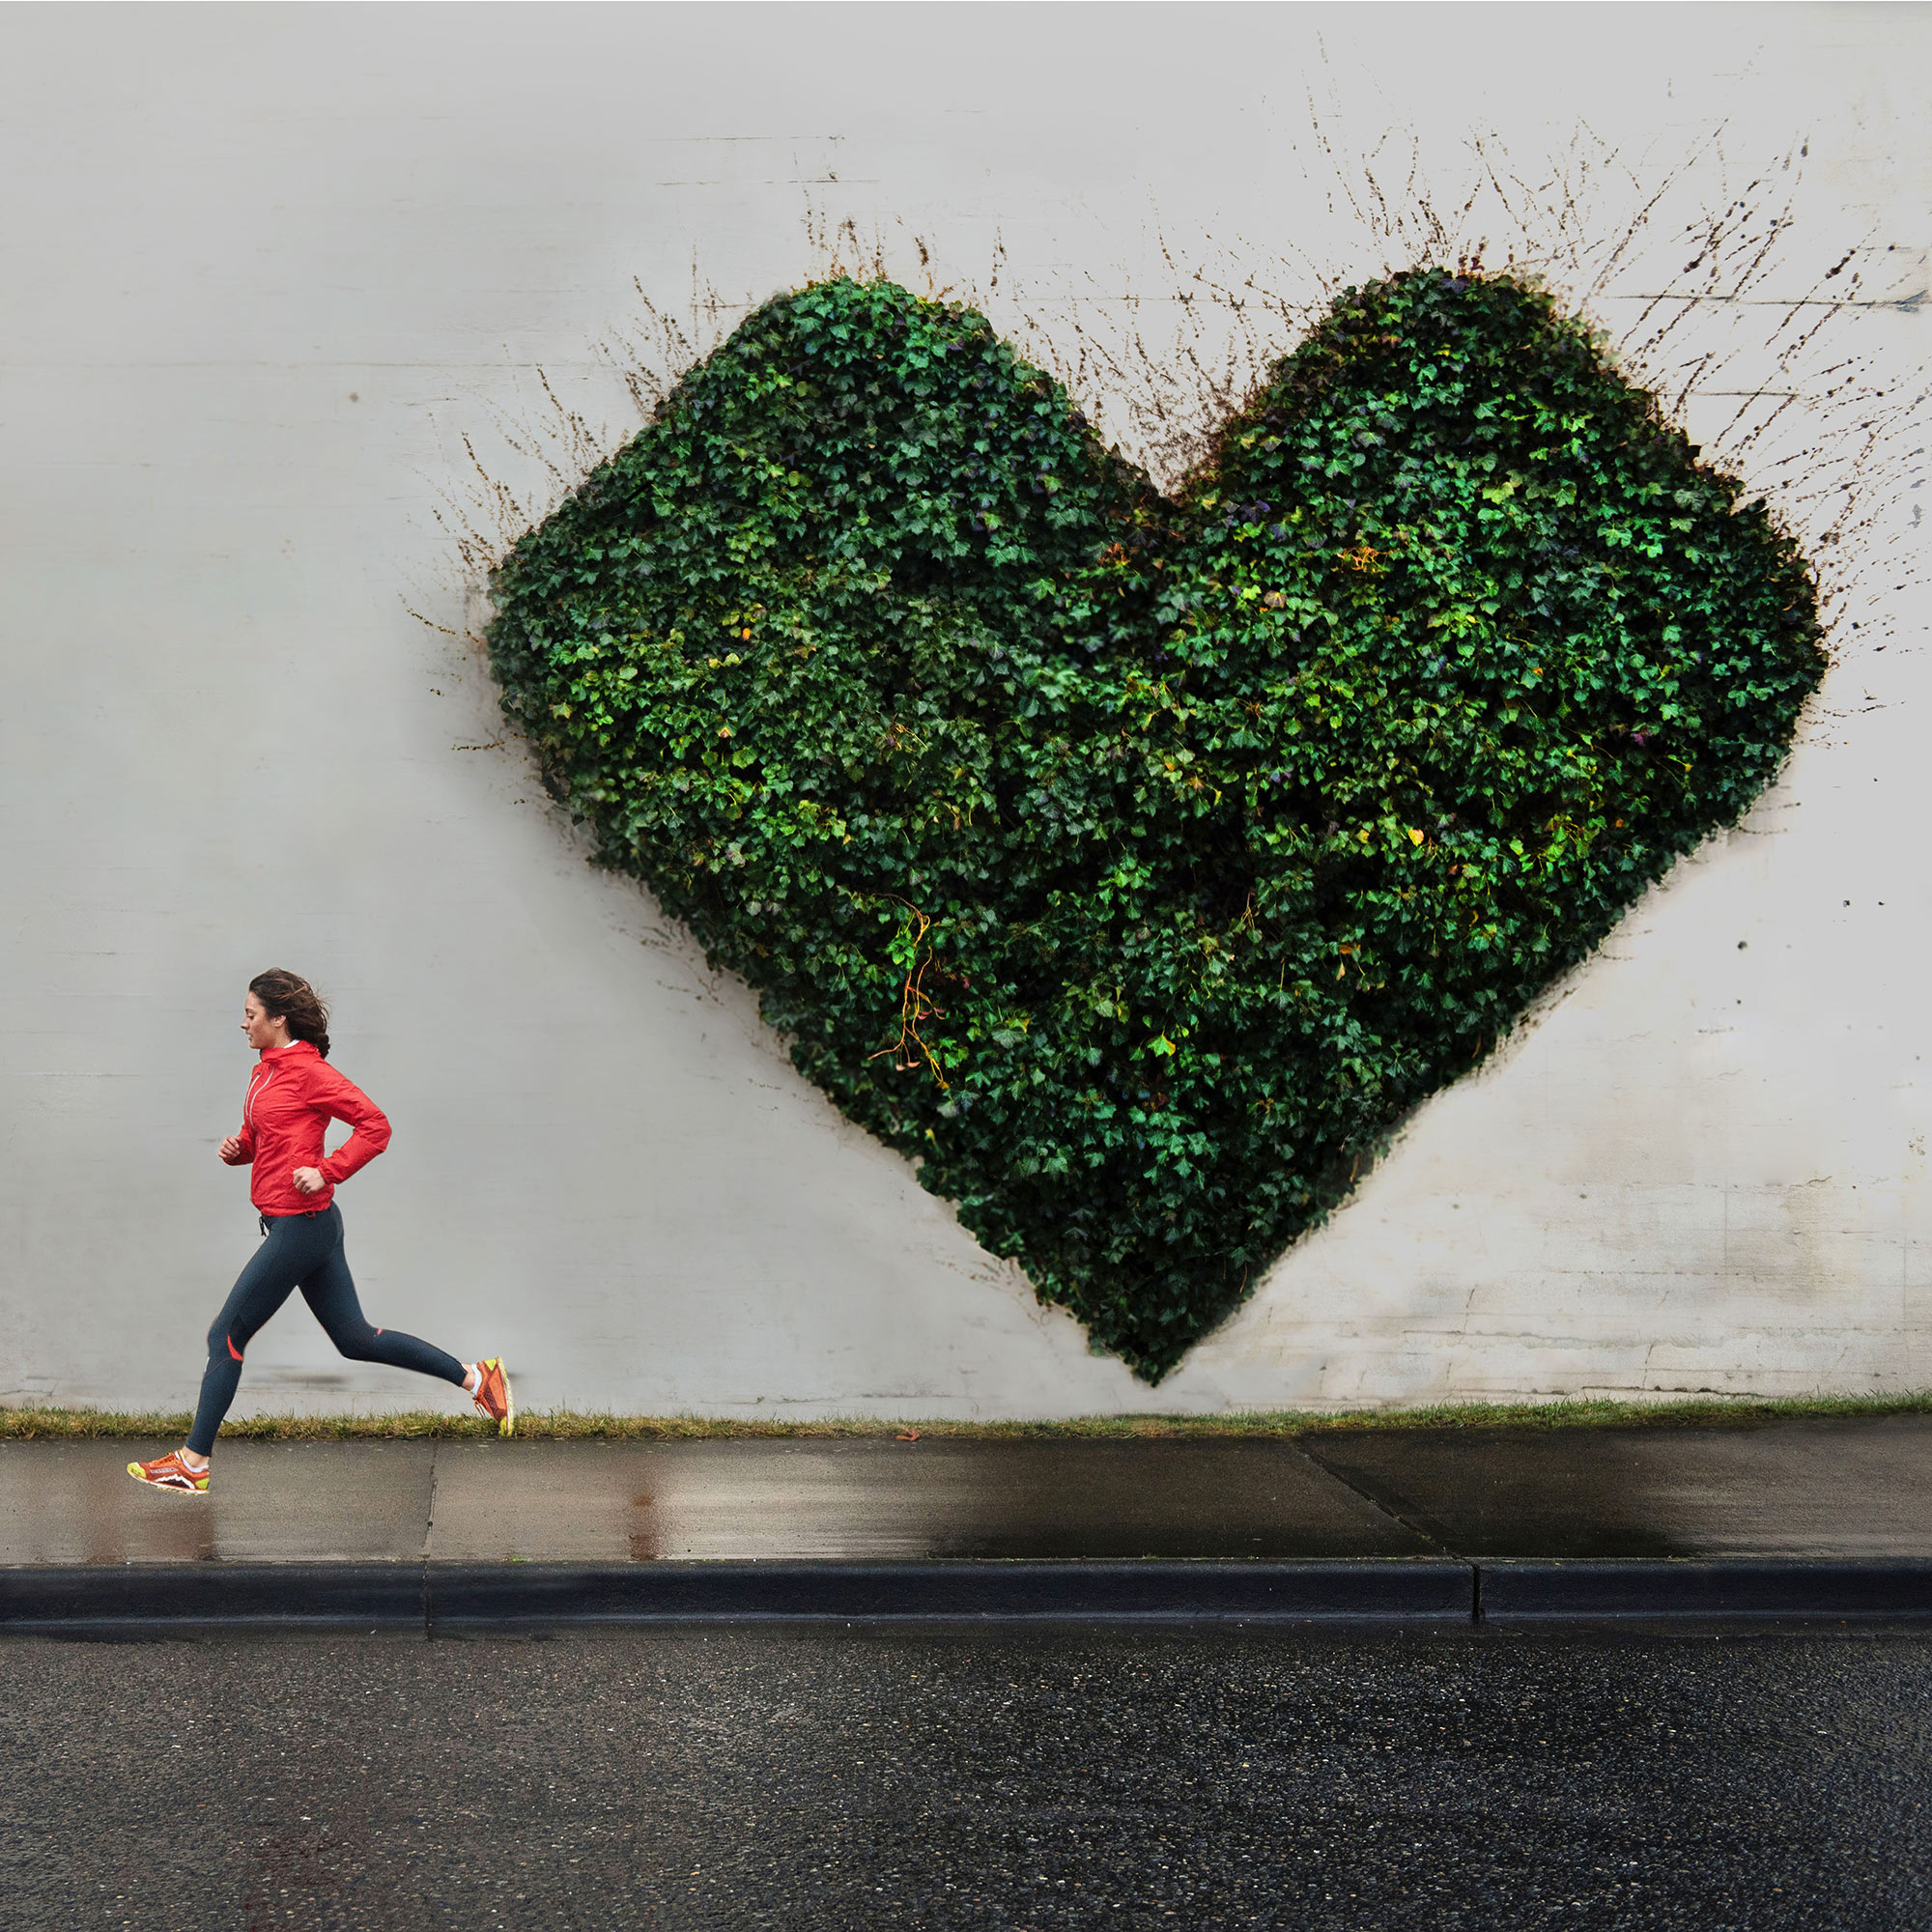 A woman jogs on the sidewalk in the city, passing a stylized CVS Health® heart in the shape of a leafy hedge.